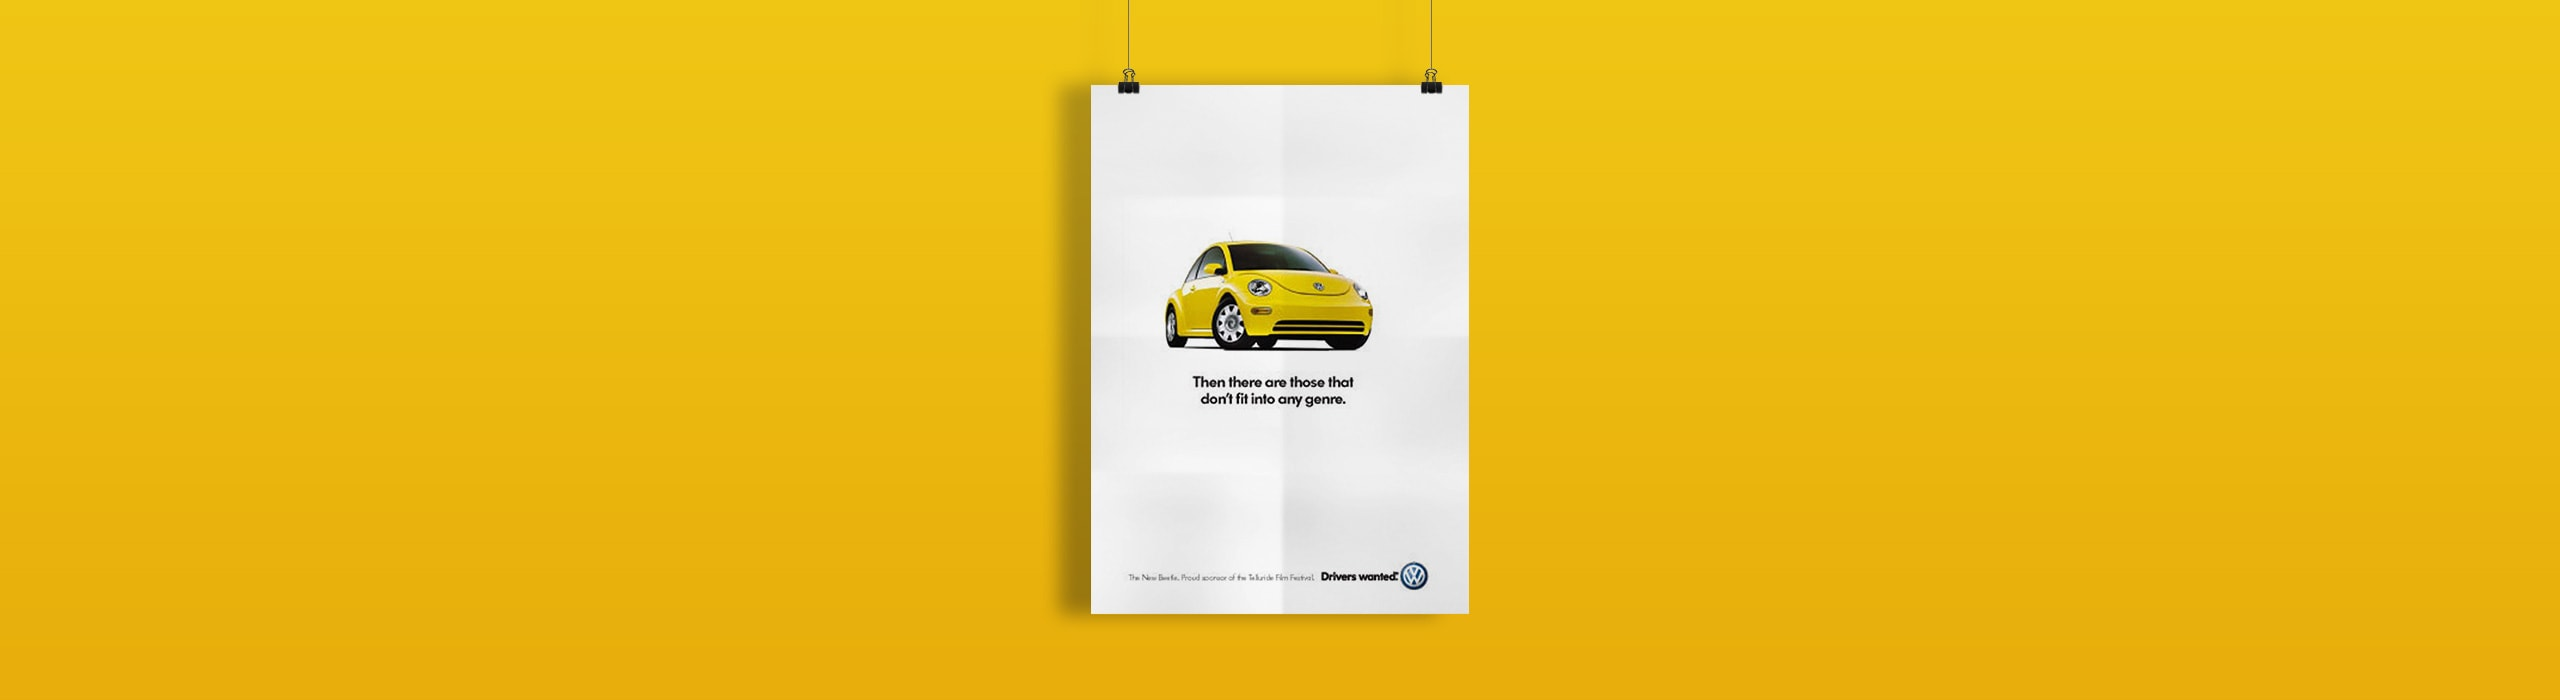 Volkswagen - natie-volkswagen-billboard-01 - Natie Branding Agency